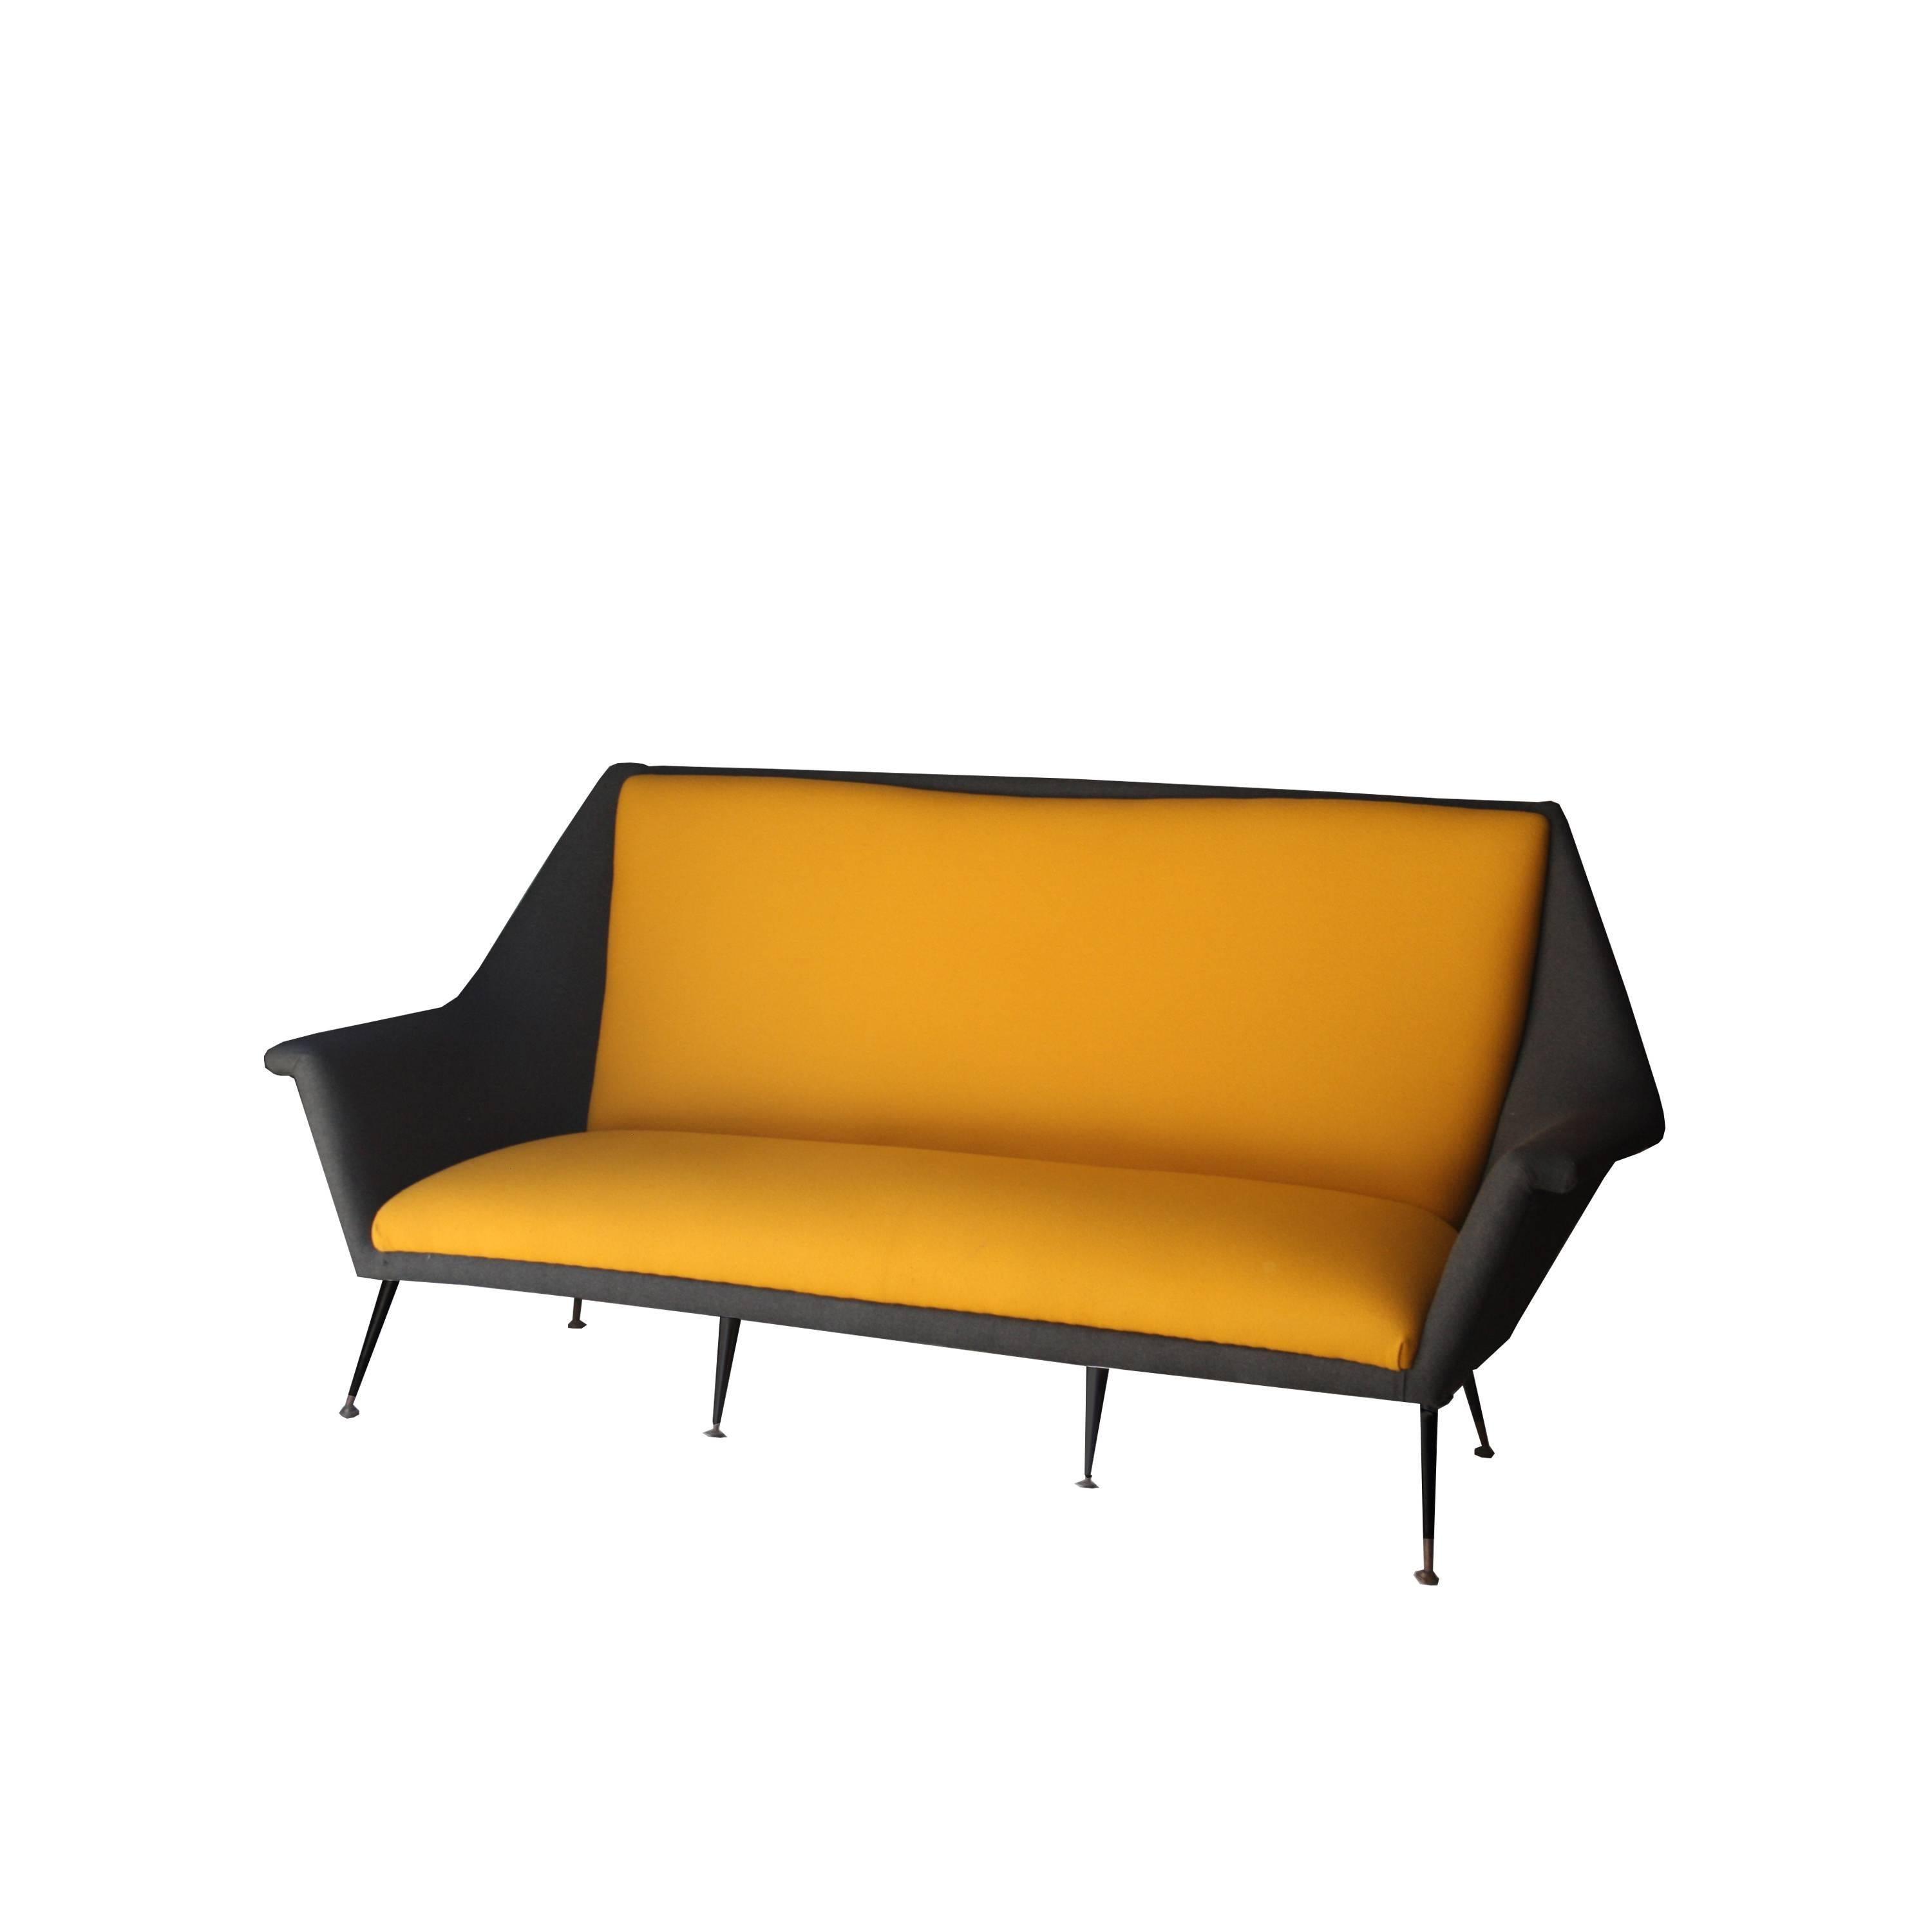 Sofa Designed by Marco Zanuso, Italy, 1950. at 1stdibs